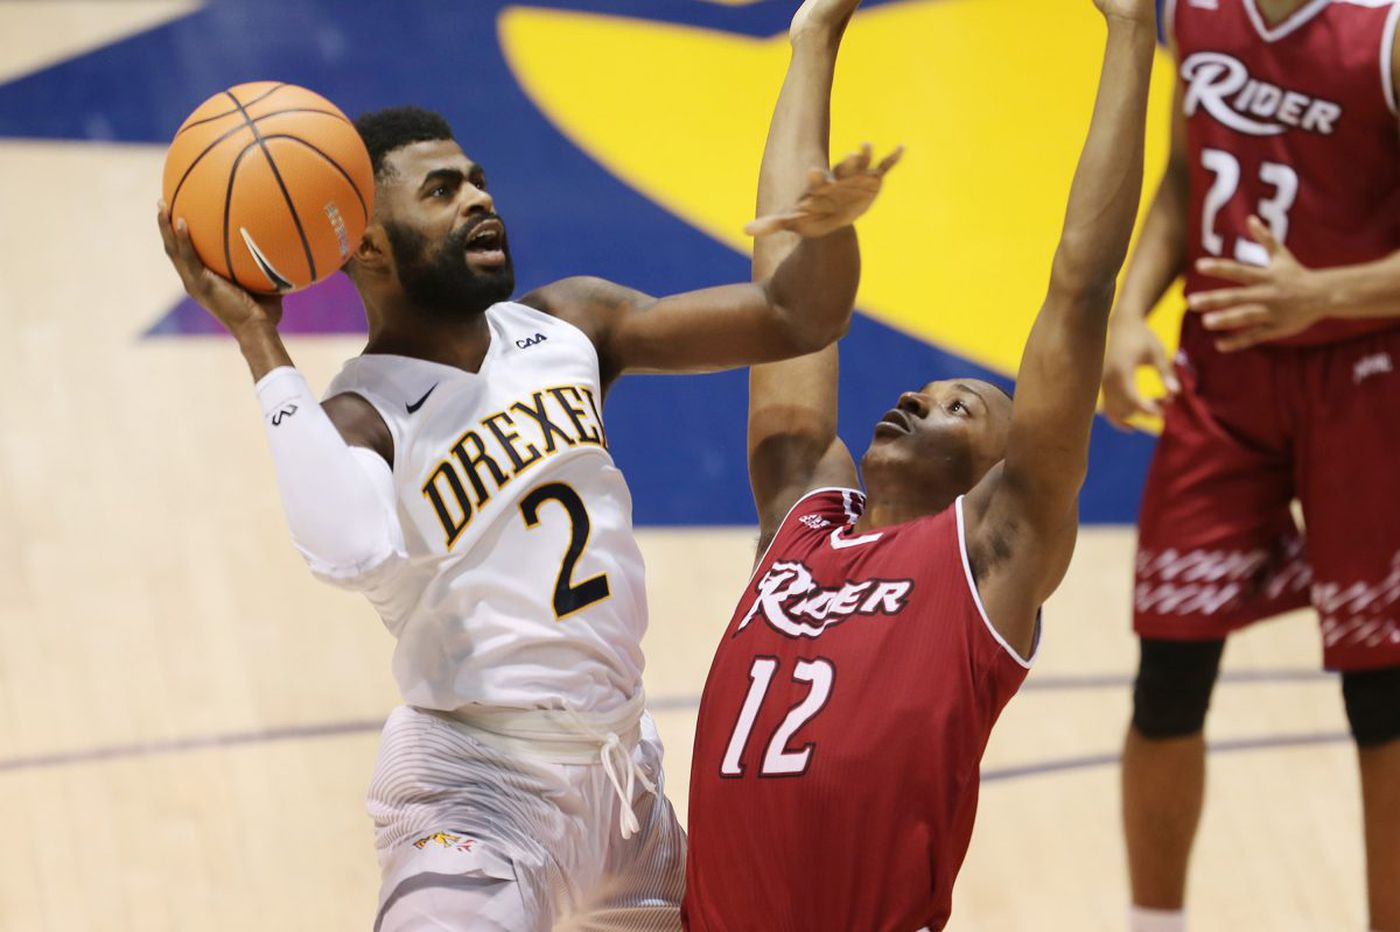 Tramaine Isabell's career night carries Drexel past Rider, 89-77